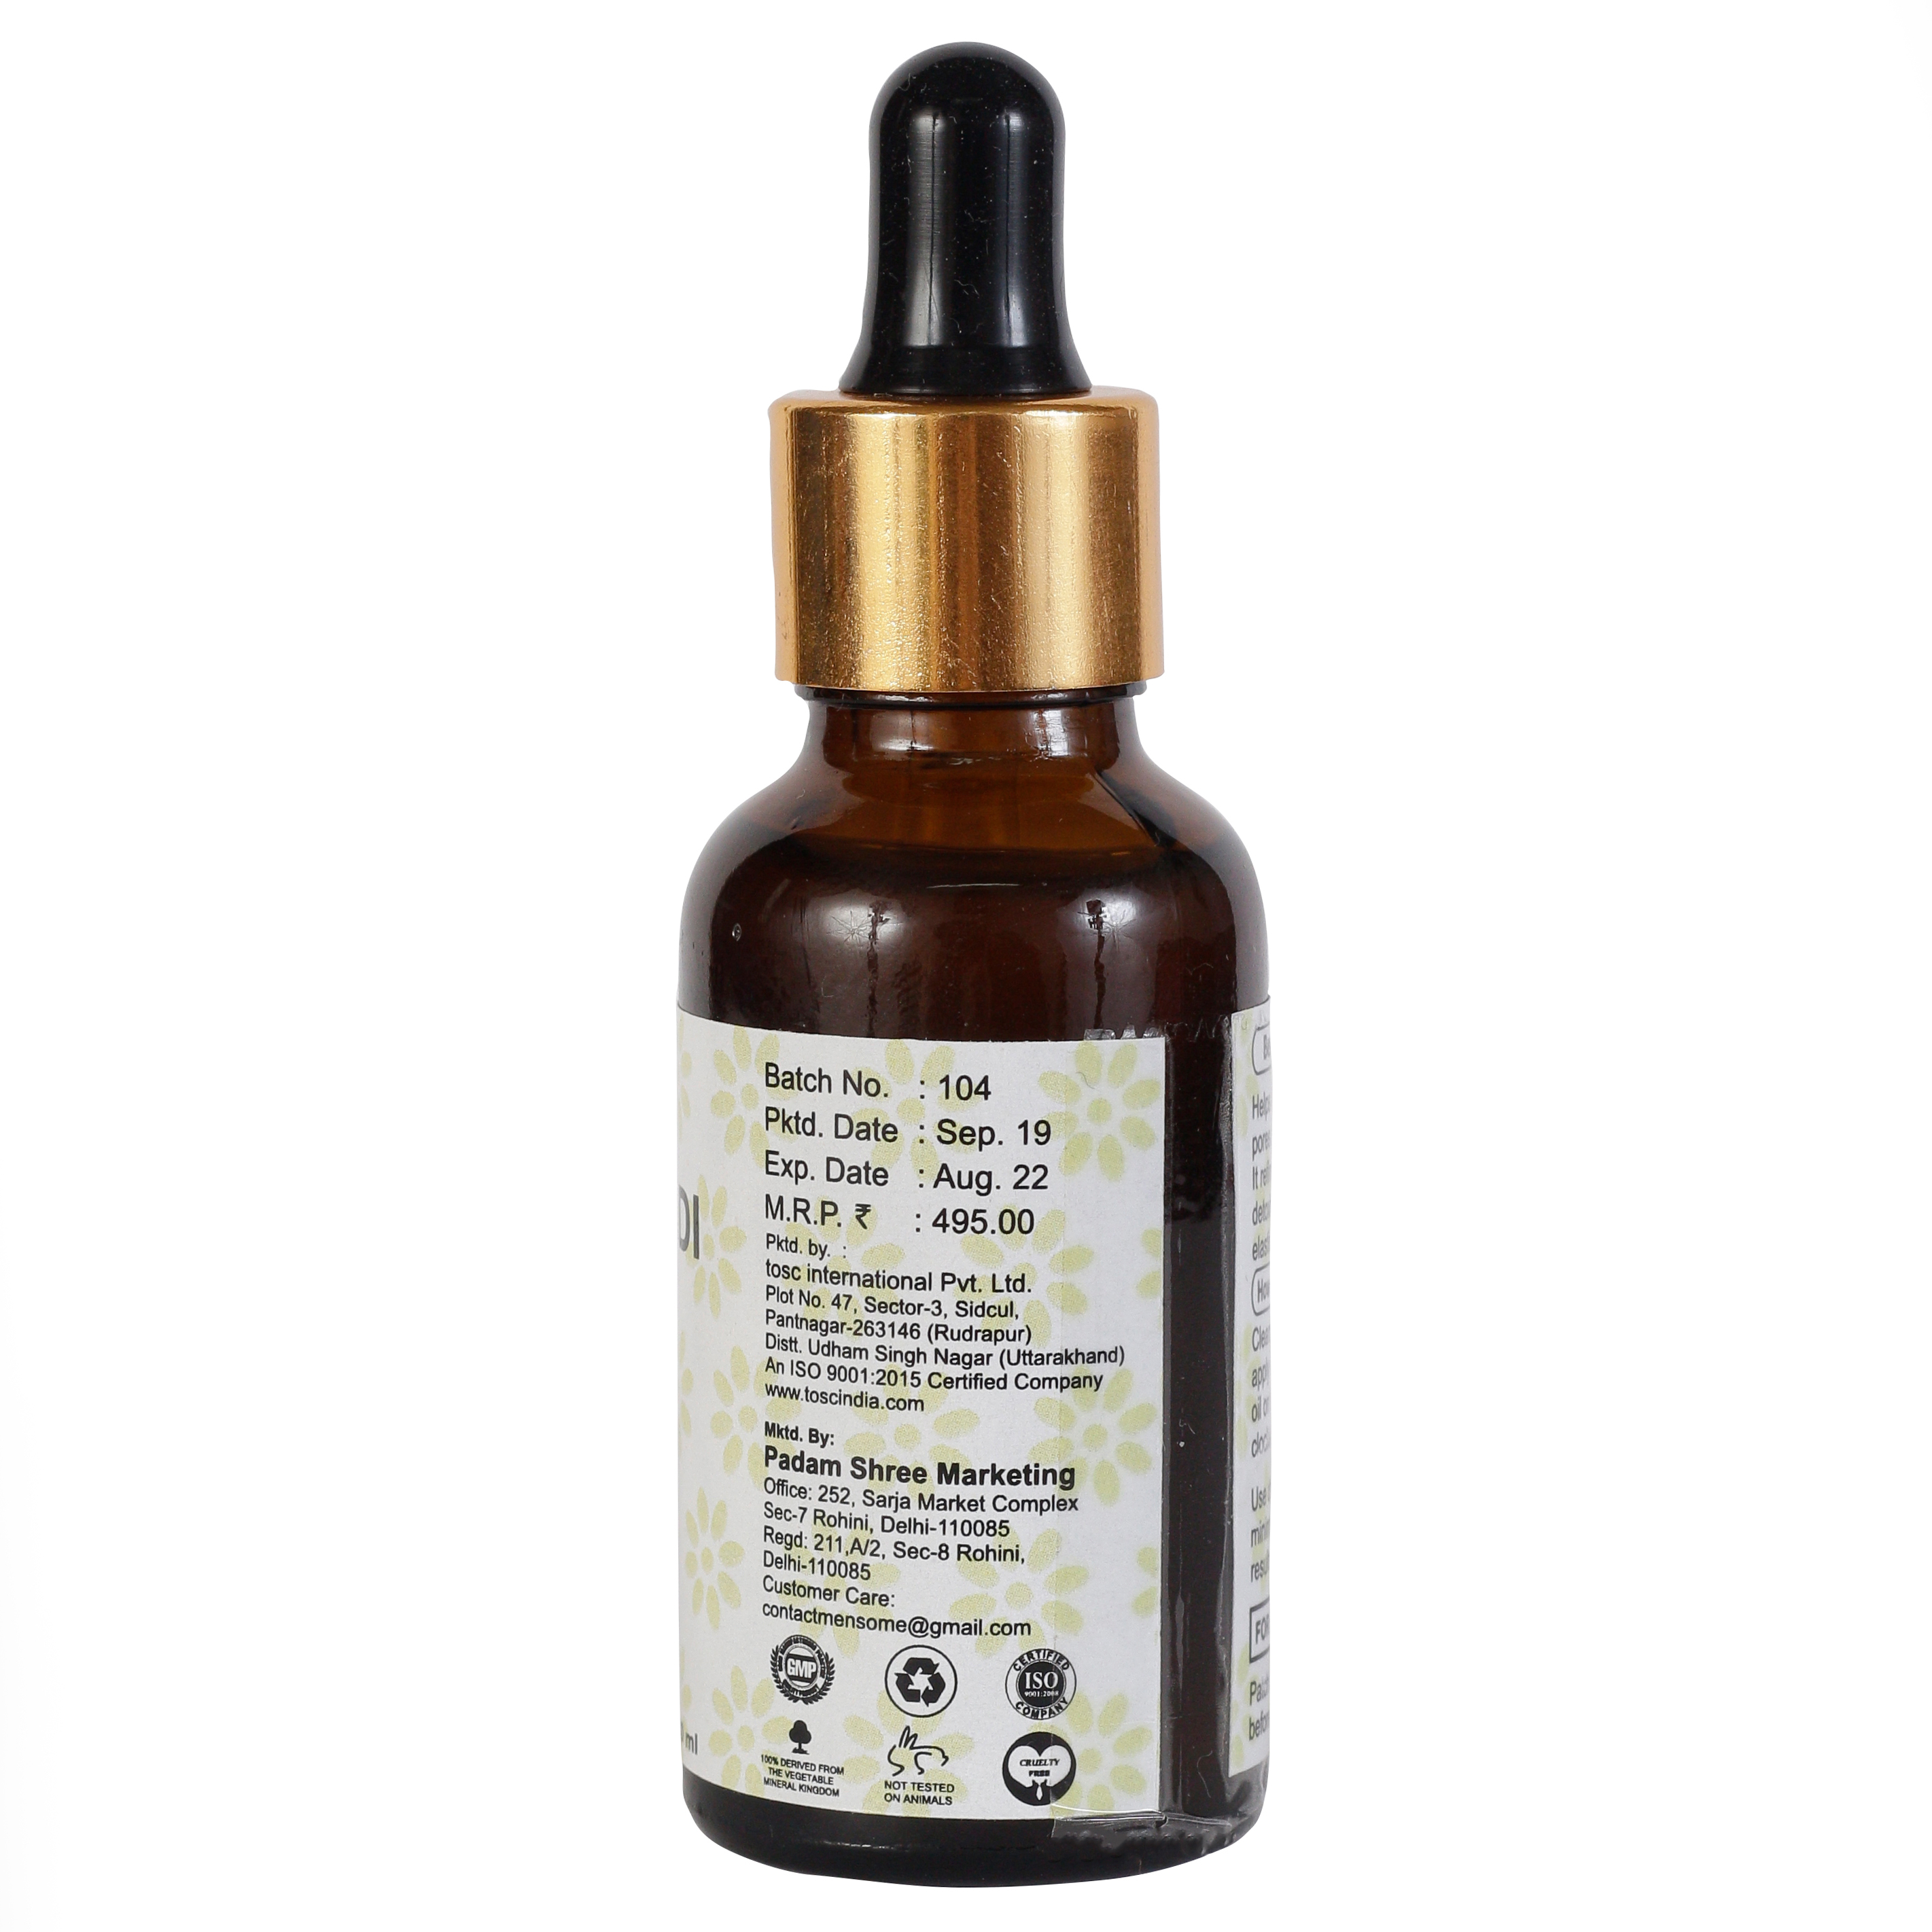 MENSOME Kumkumadi Tailam Oil for Face and Neck (30 ml)